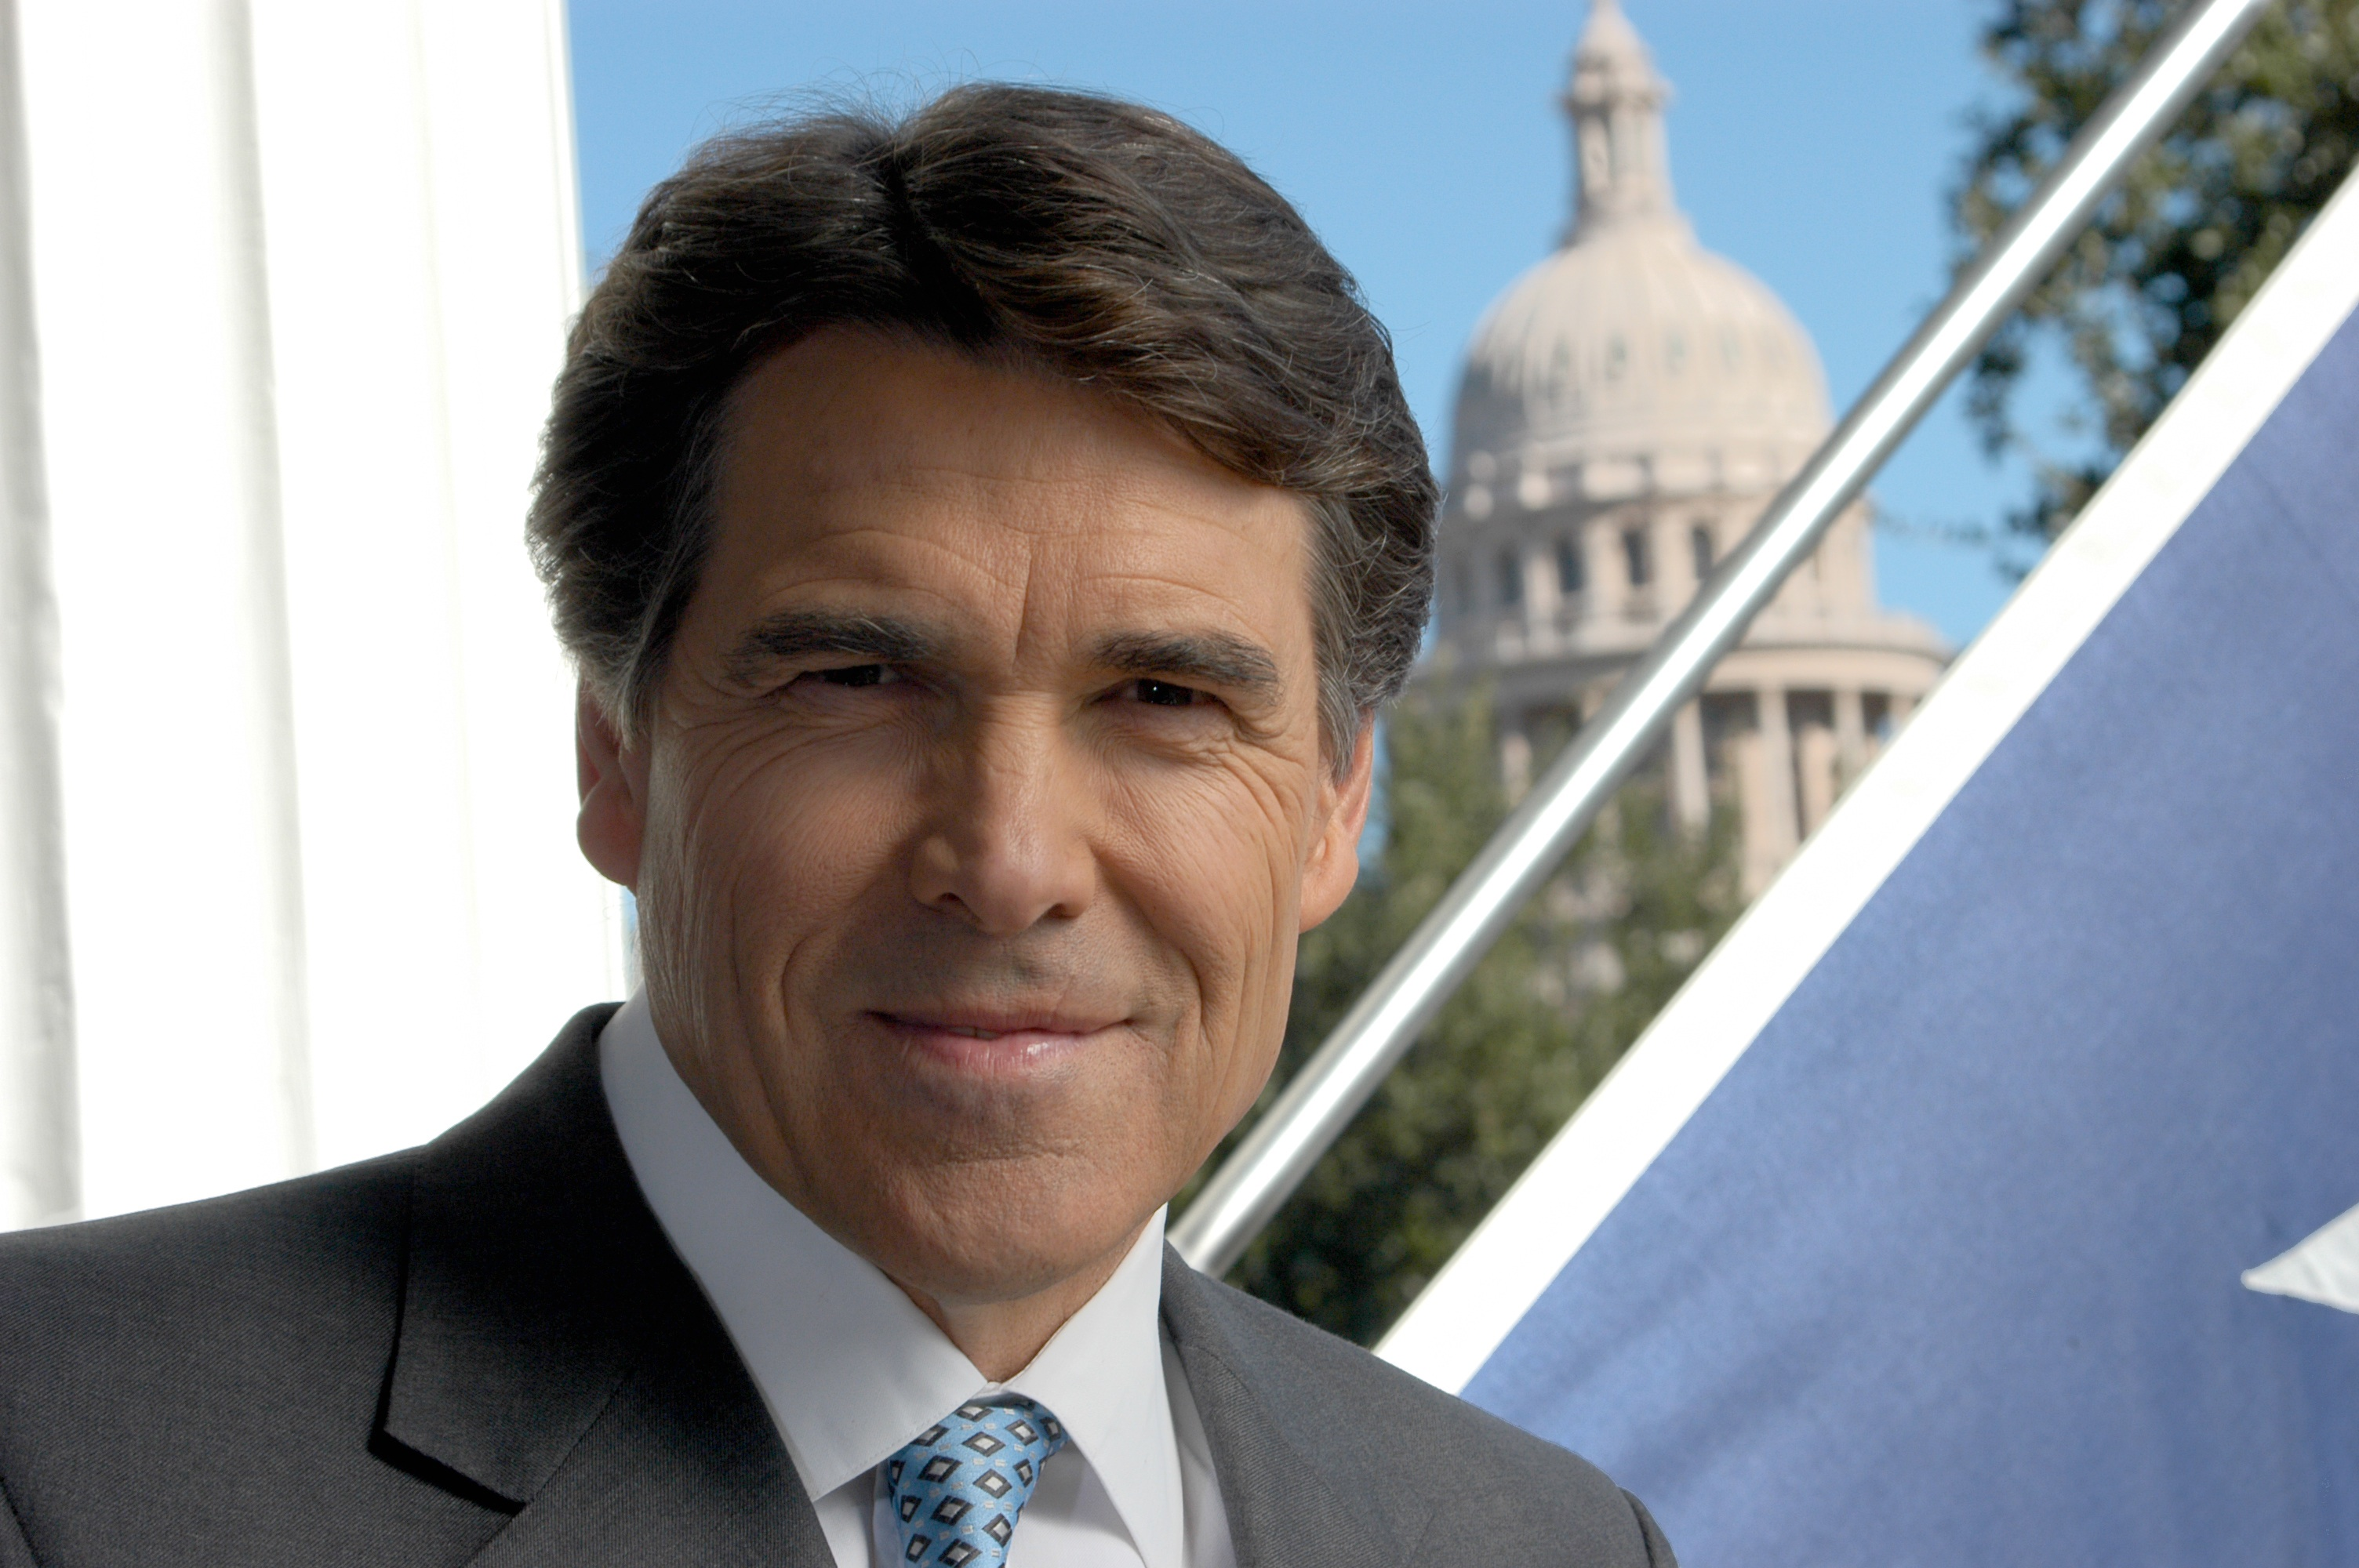 GovRickPerry-headshot1